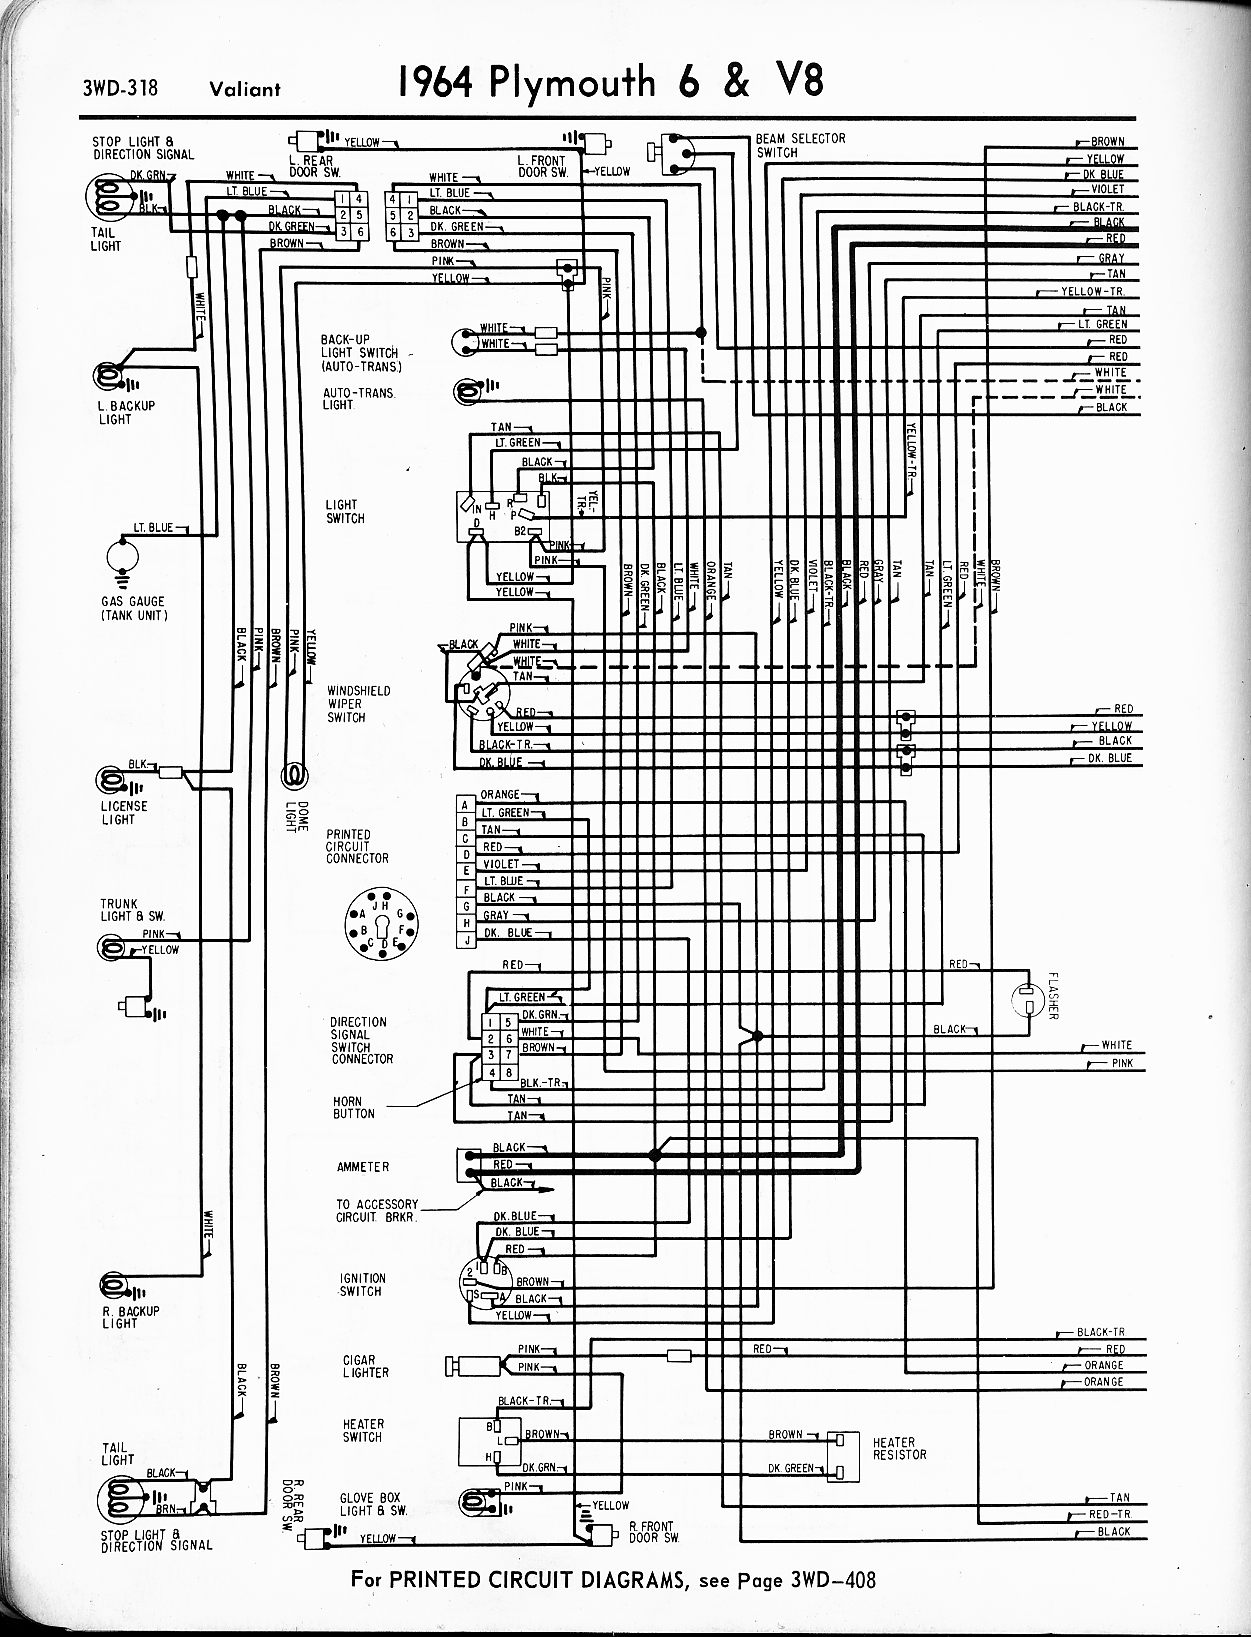 1966 Plymouth Wire Diagram Trusted Wiring Diagrams 1970 Satellite 1956 1965 The Old Car Manual Project Rh Oldcarmanualproject Com 1968